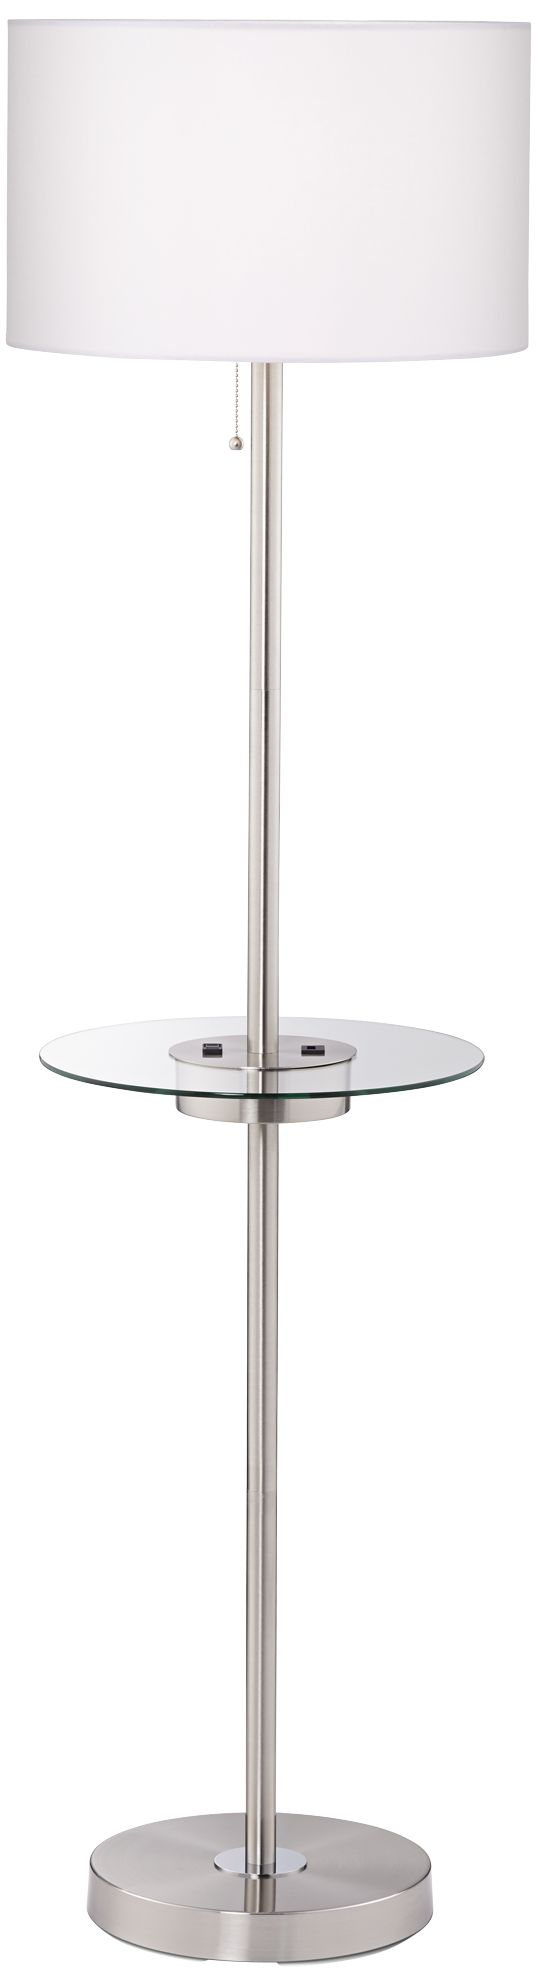 caper brushed satin tray table floor lamp with usb port